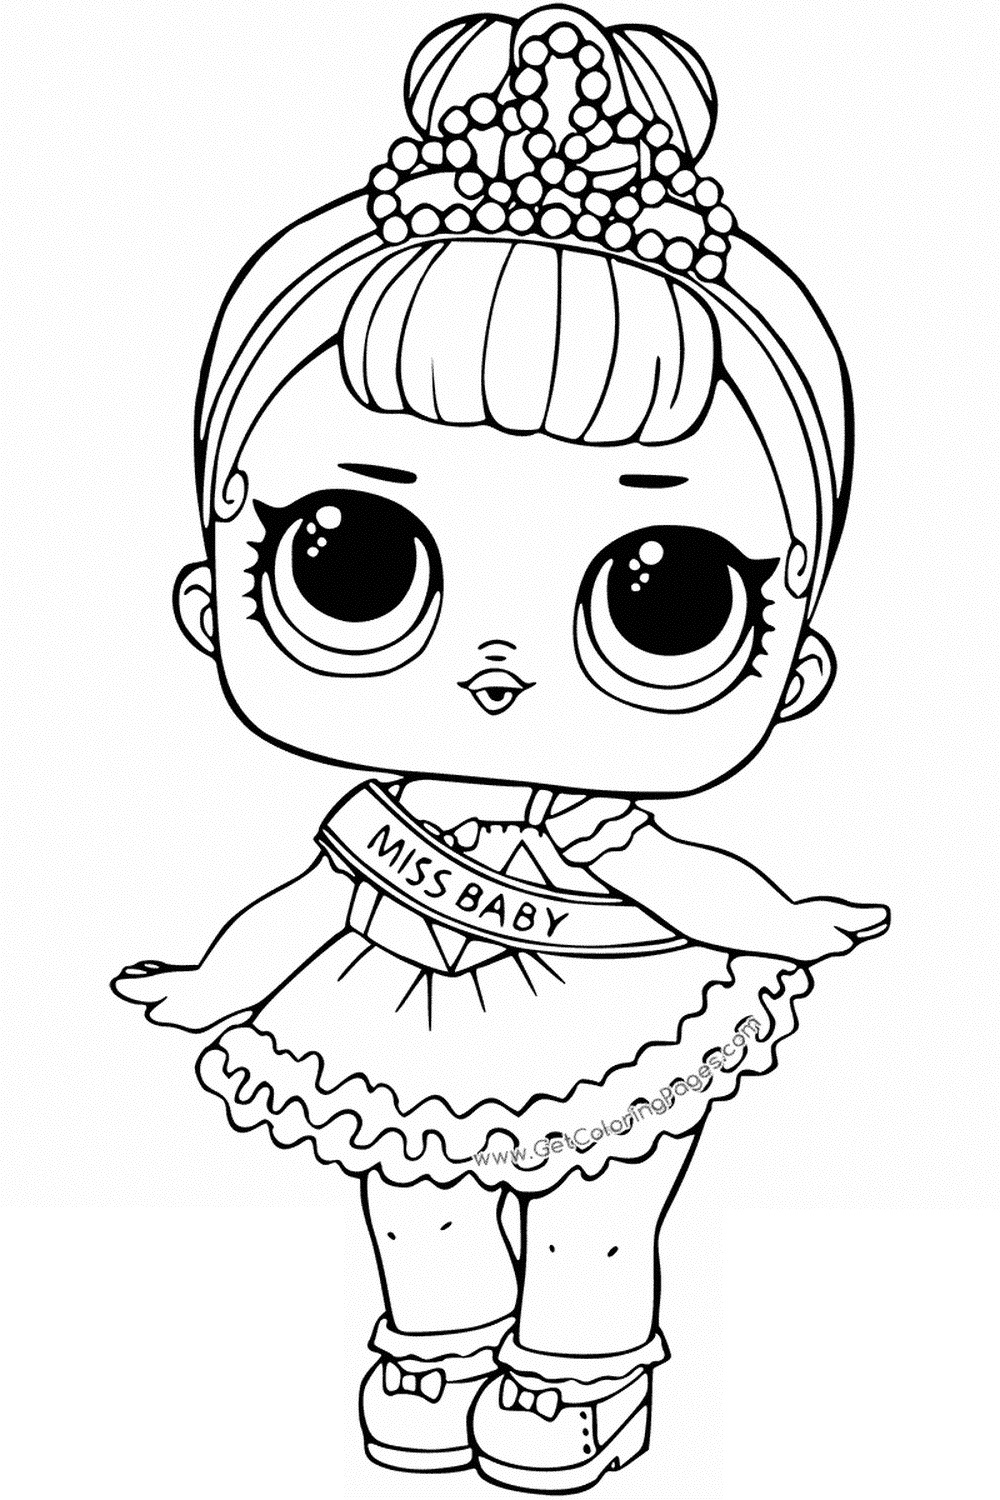 coloring picture lol lol coloring pages lol dolls for coloring and painting coloring lol picture